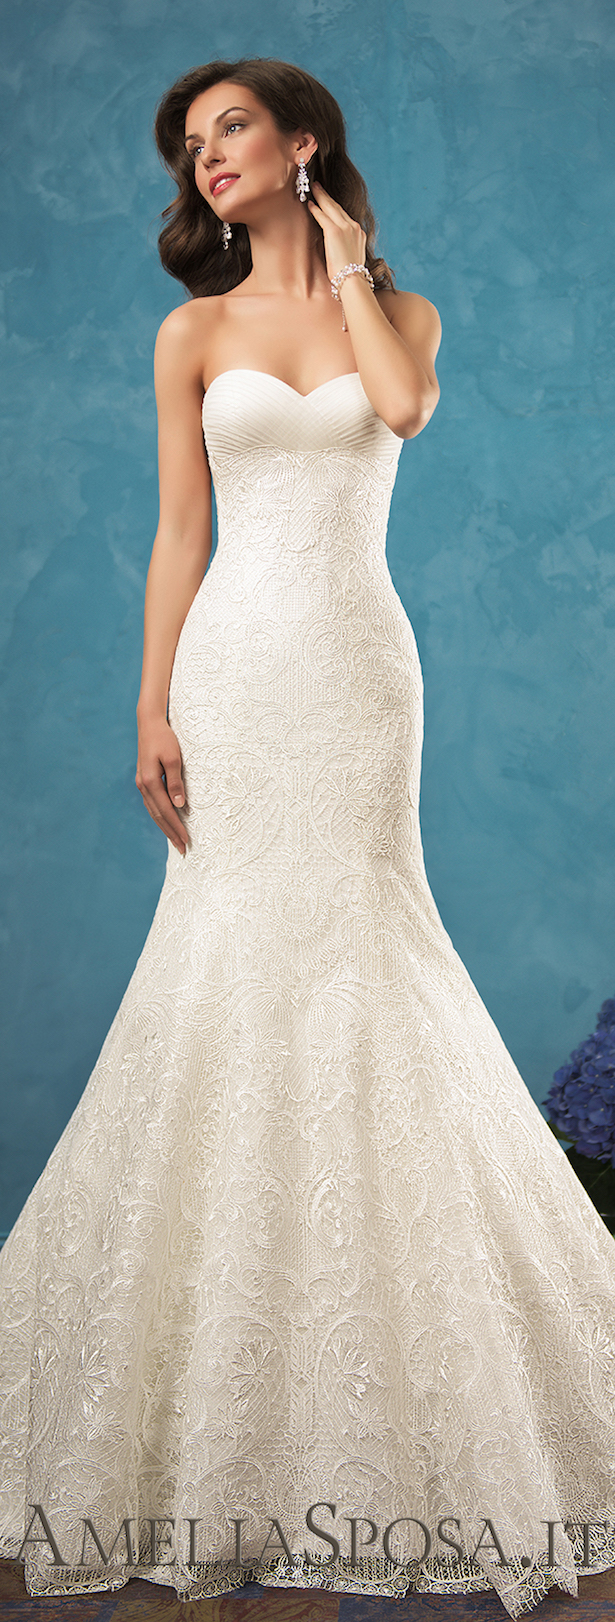 sweetheart wedding dresses sweetheart wedding dresses Amelia Sposa Wedding Dress